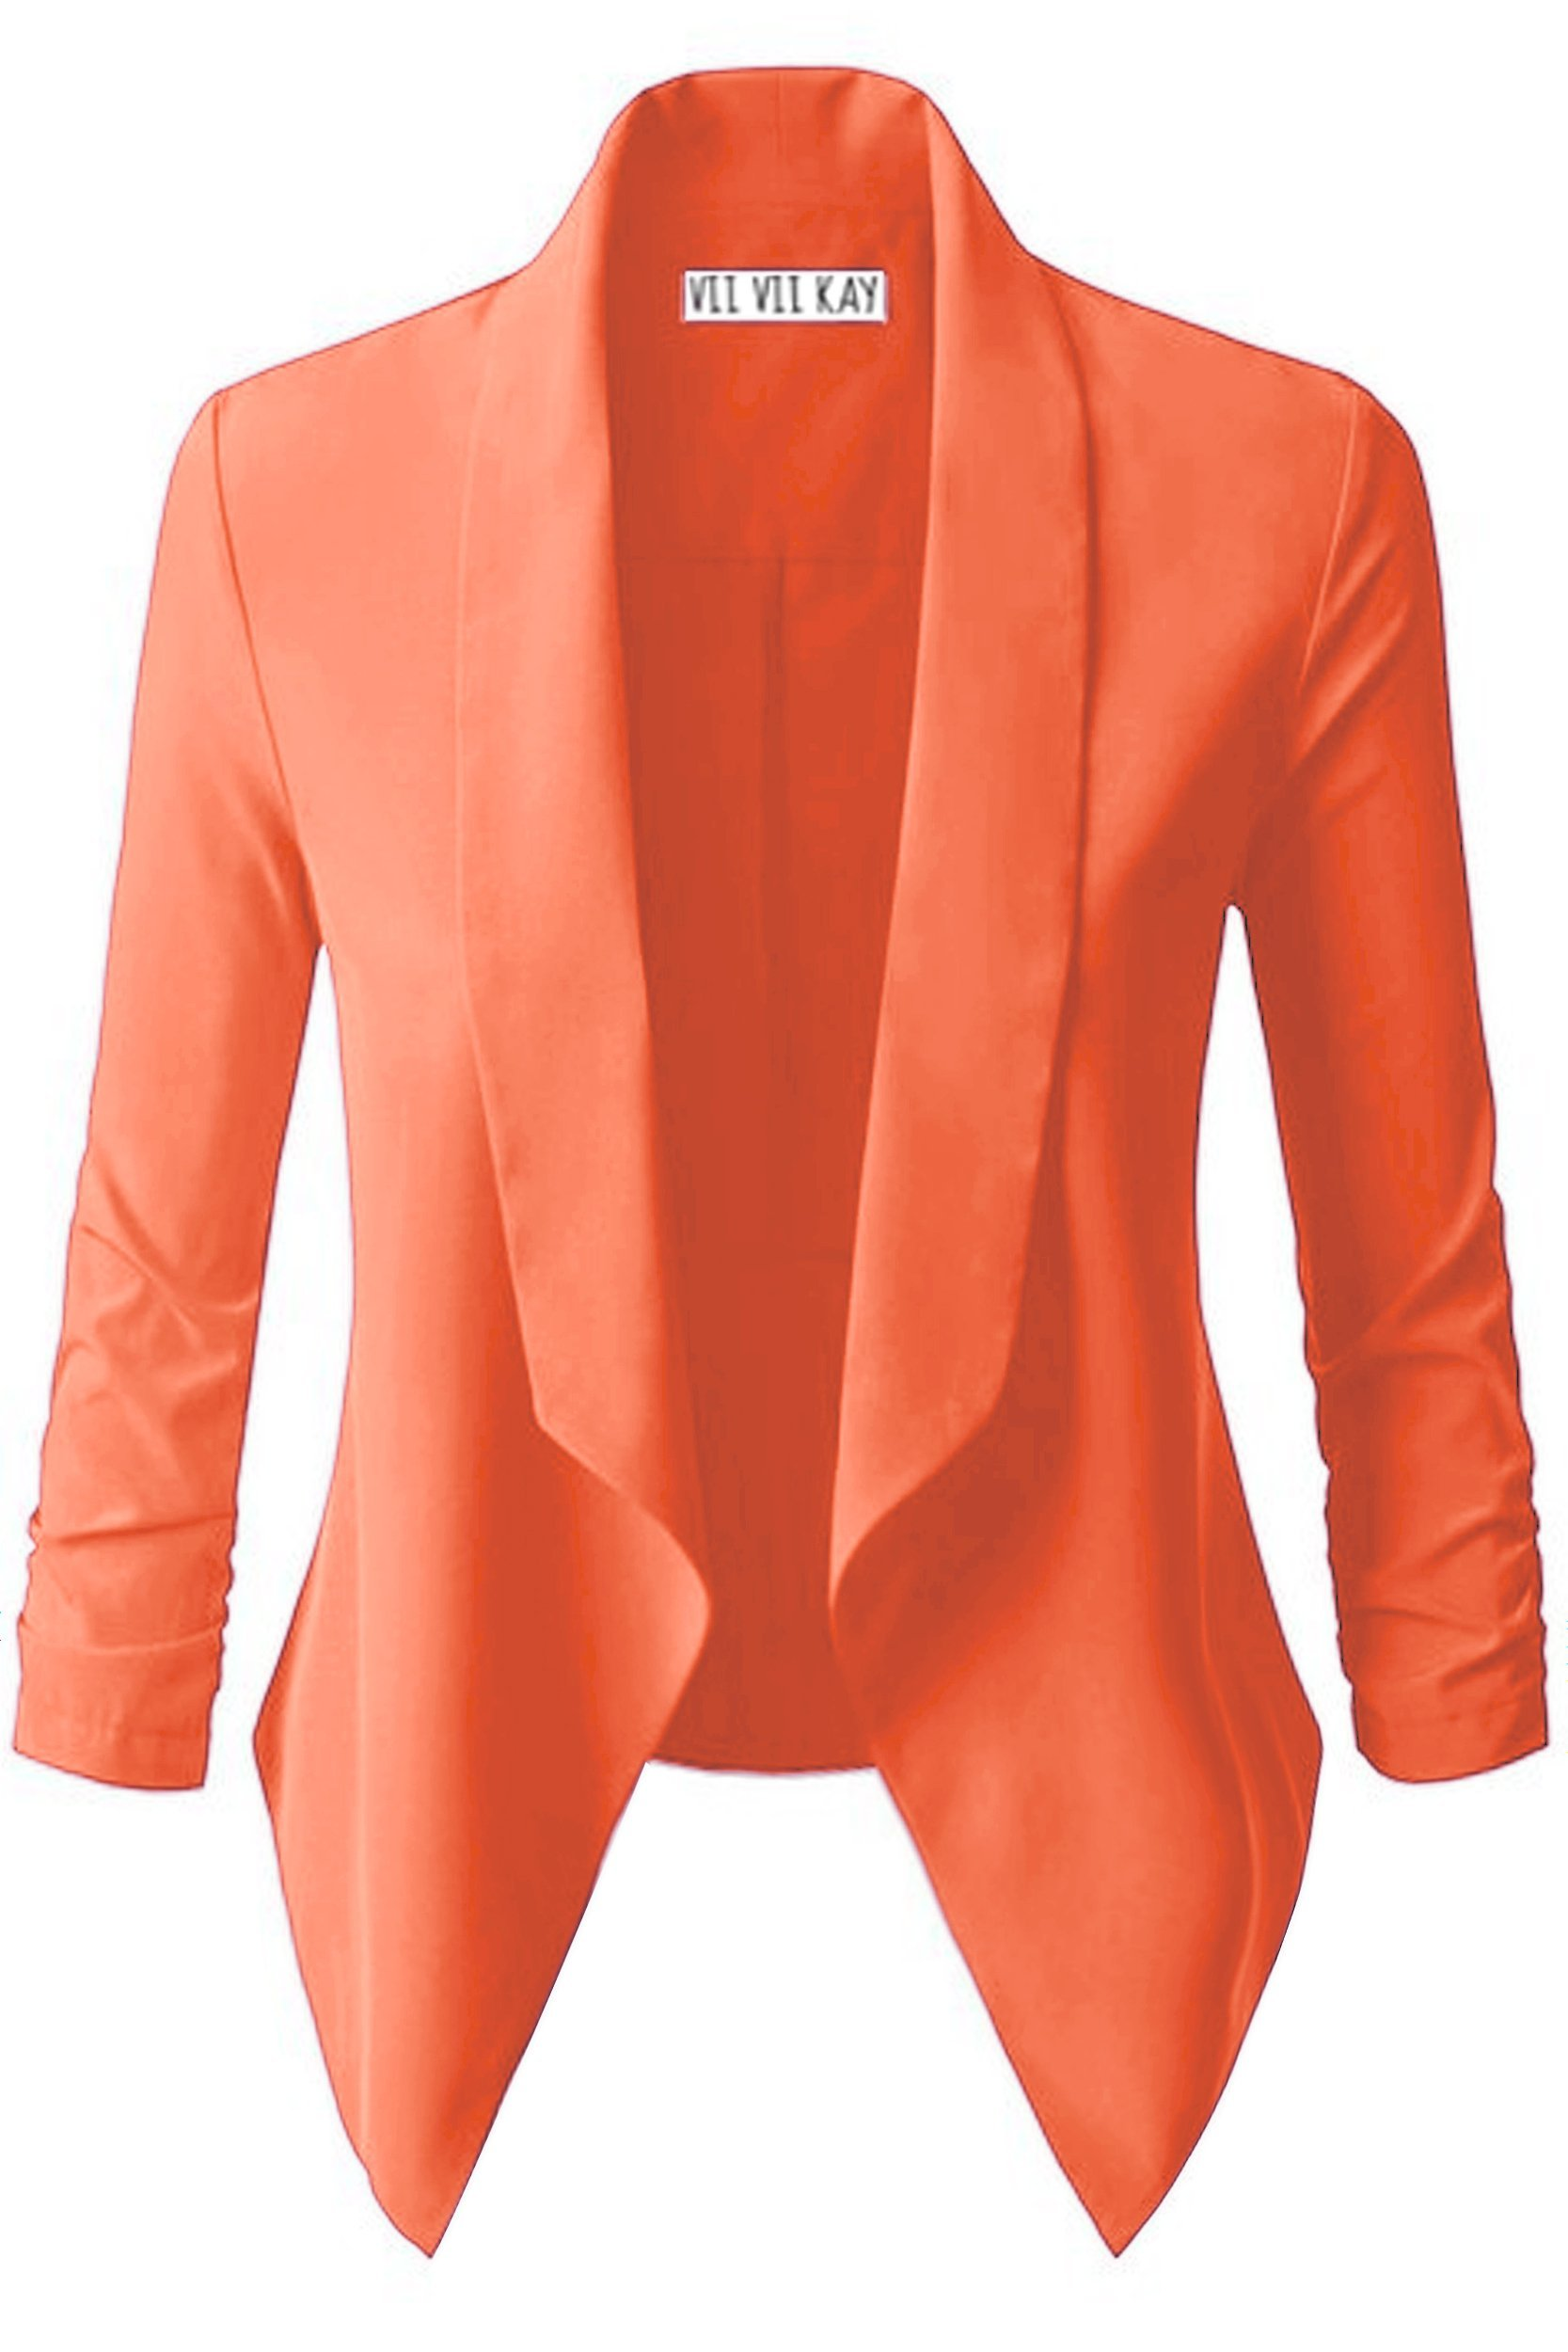 ViiViiKay Women's Versatile Business Attire Blazers in Multiple Styles 261_NEONCORAL M